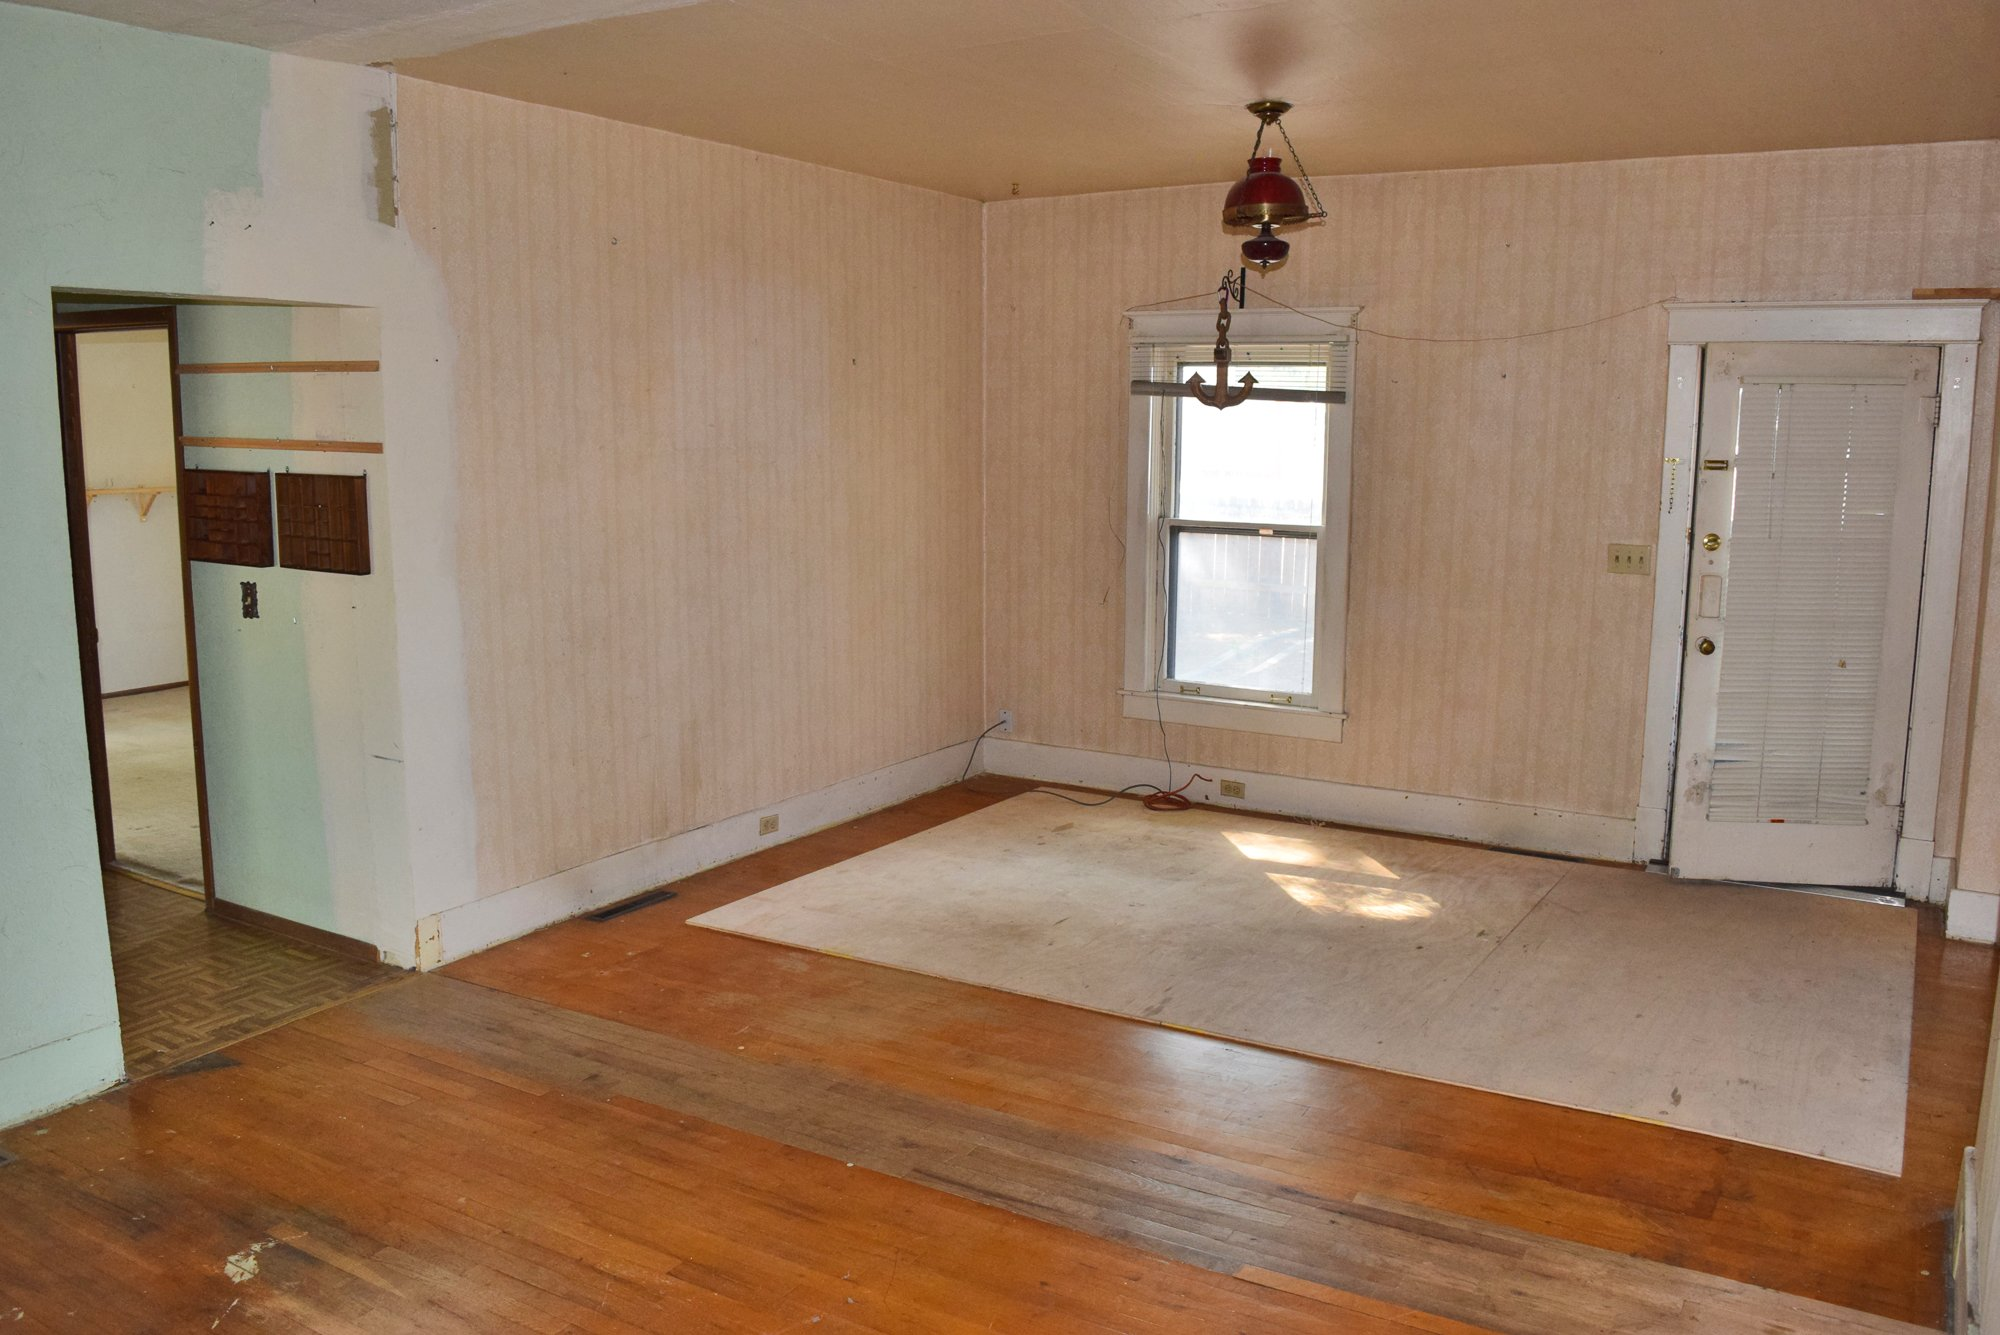 Living Area with Hardwood Floors - 1301 N. 1st St. Montrose, CO 81401 - Atha Team Realty